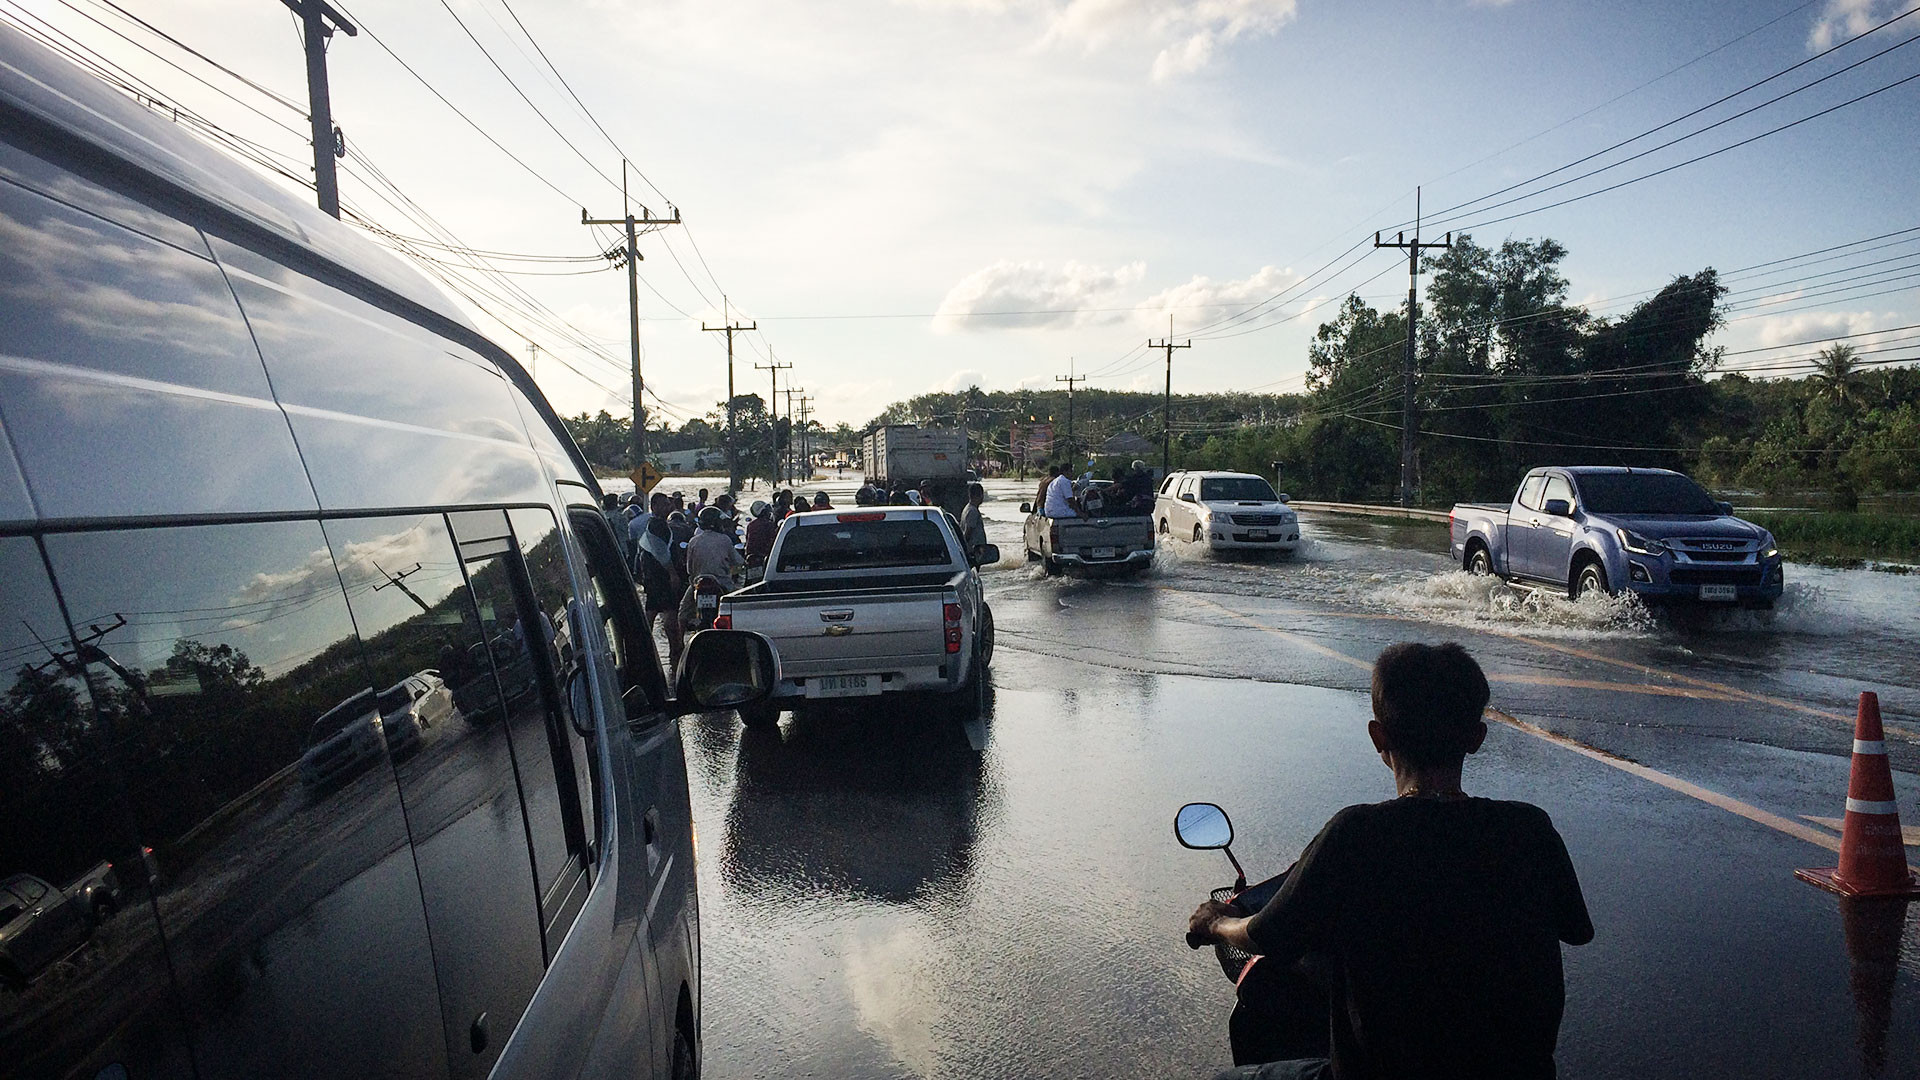 People navigate a flooded road in Trang, southern Thailand